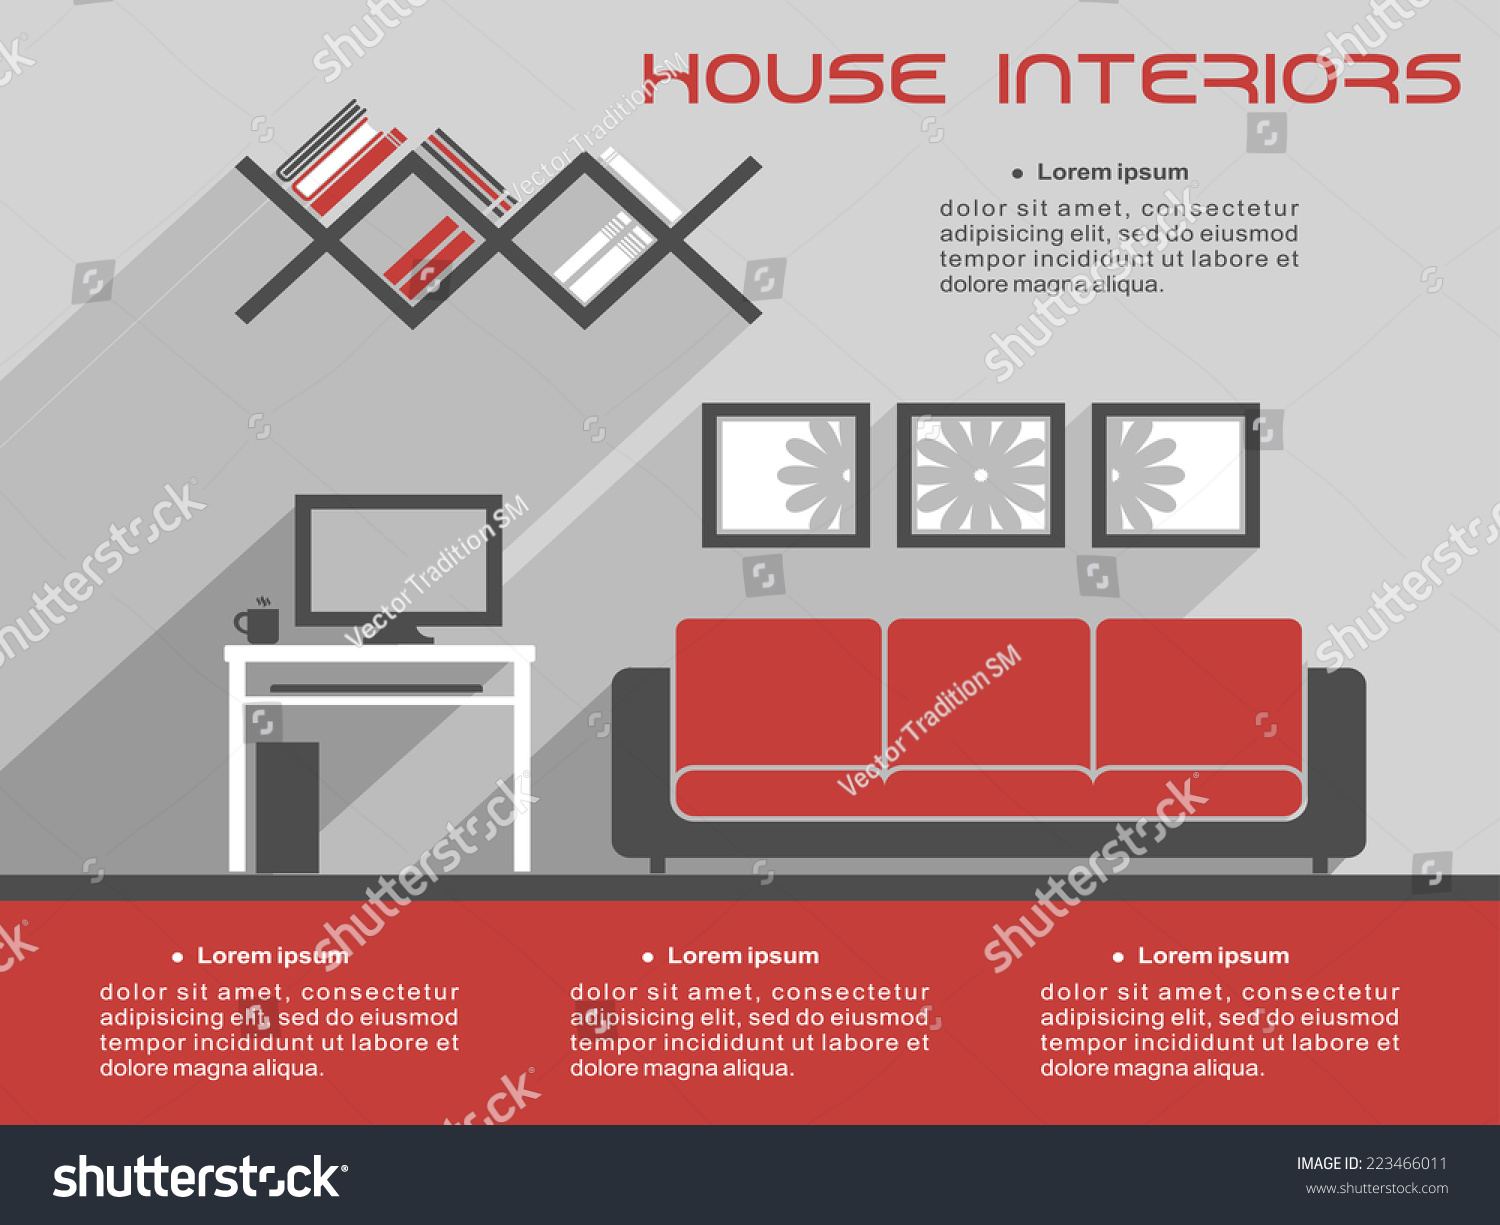 House interior design infographic template showing stock vector house interior design infographic template showing a vector living room with a television sofa and pronofoot35fo Image collections